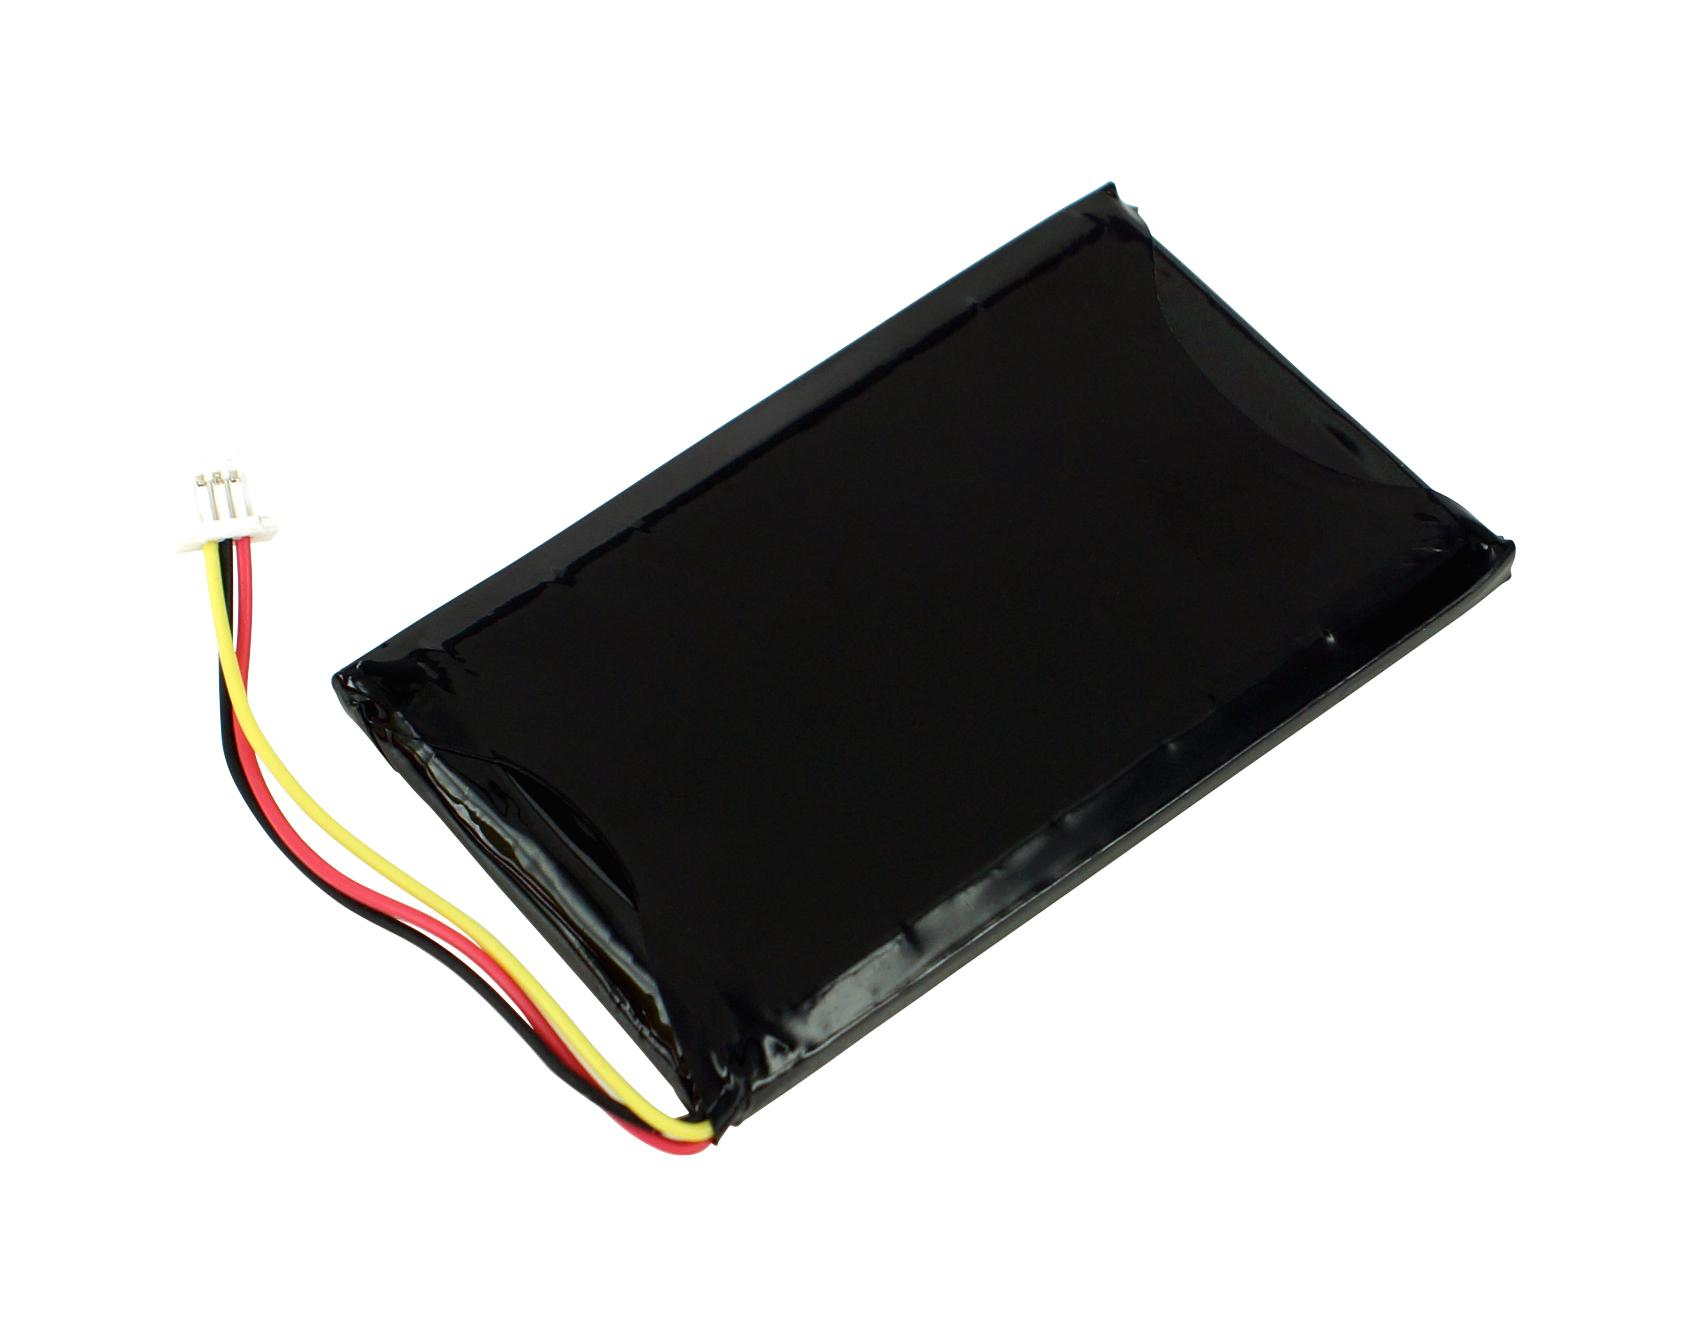 gps equipment battery for garmin nuvi 205 nuvi 205w nuvi. Black Bedroom Furniture Sets. Home Design Ideas